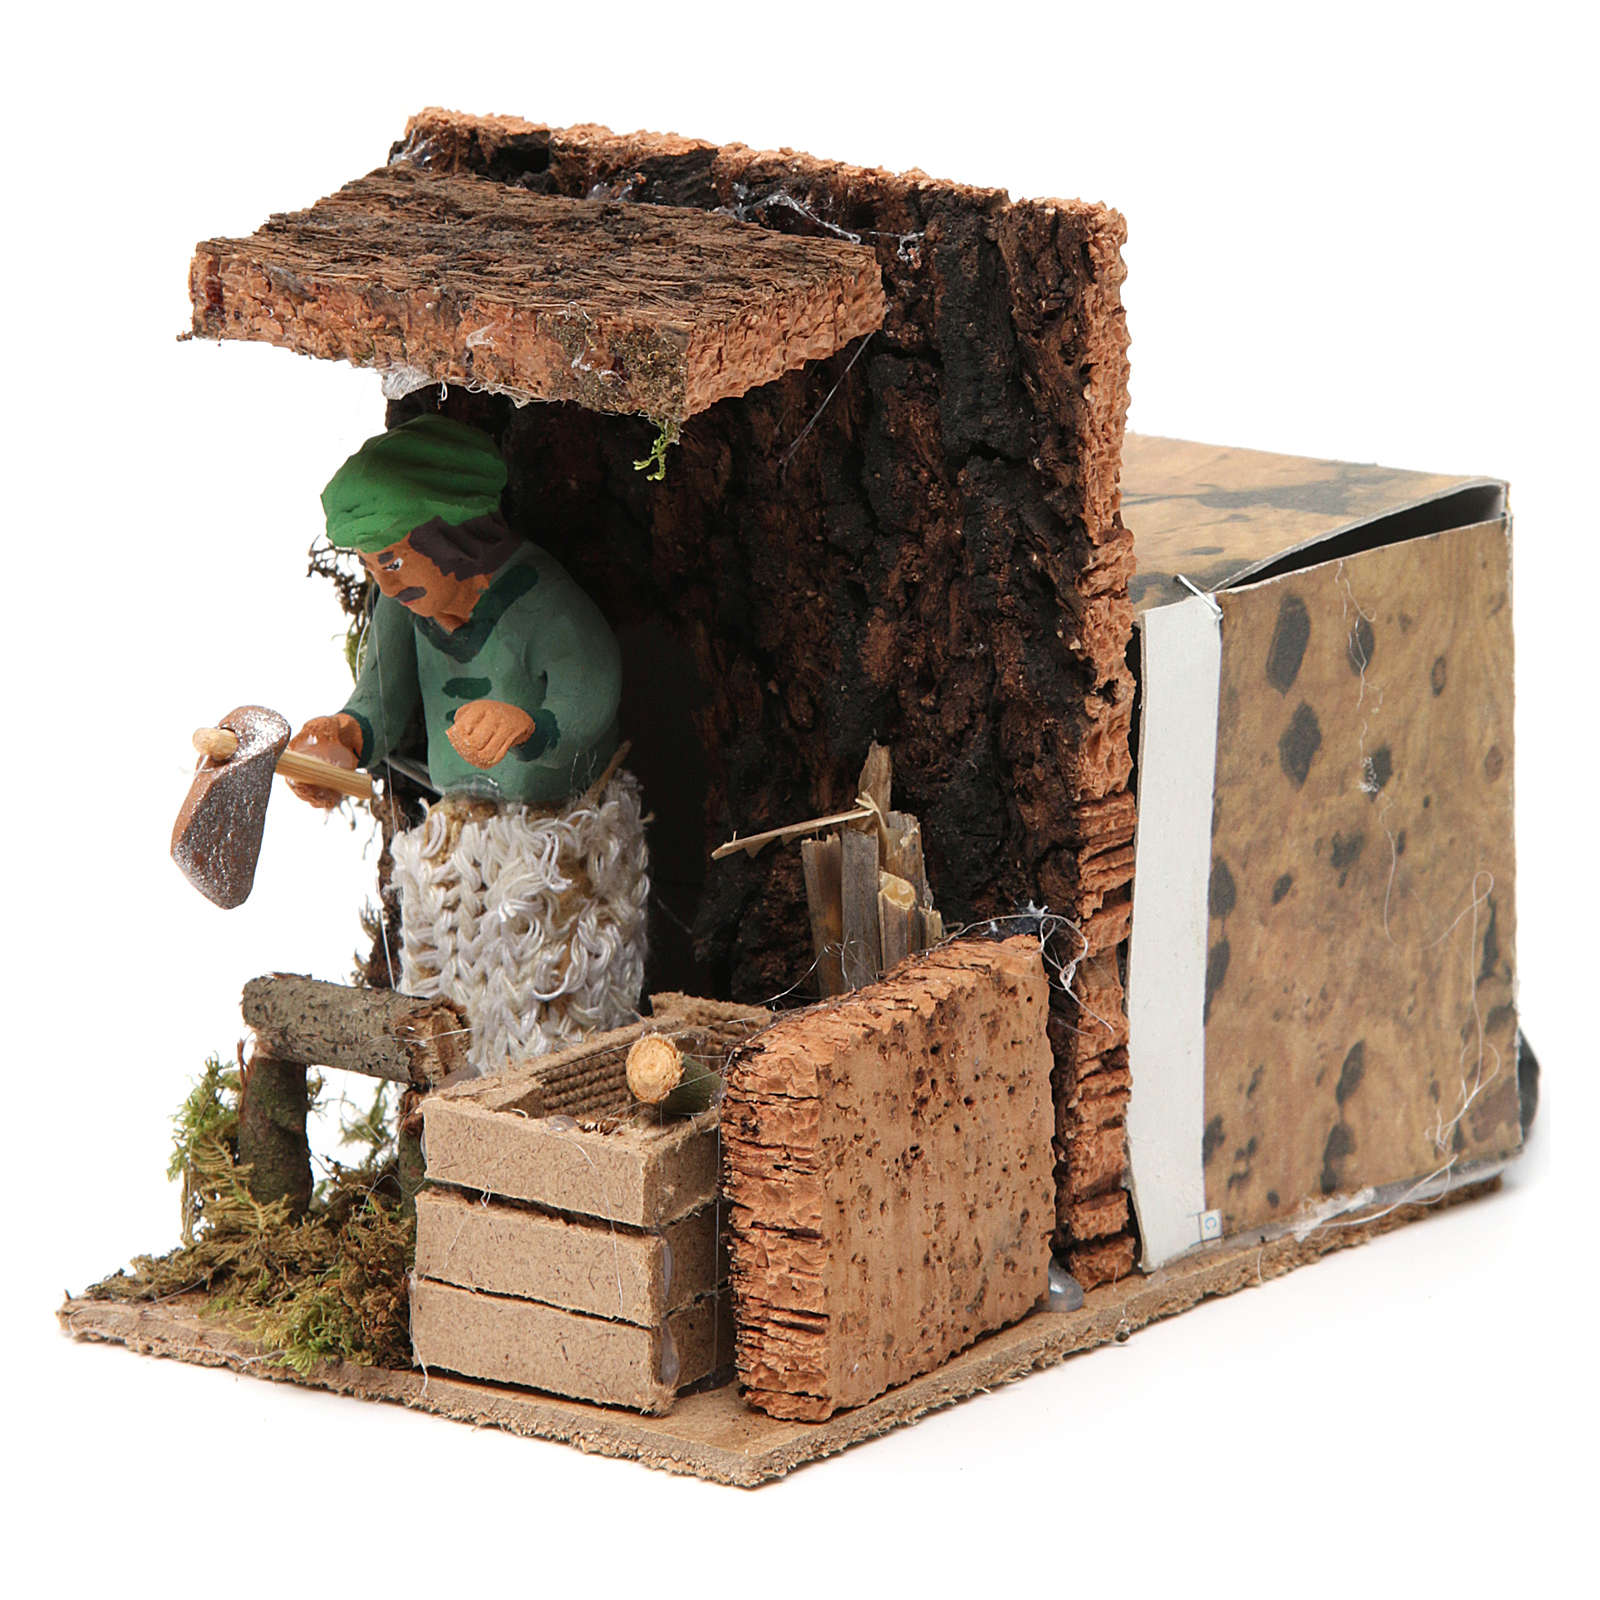 Woodsman measuring 7cm, animated nativity figurine 3